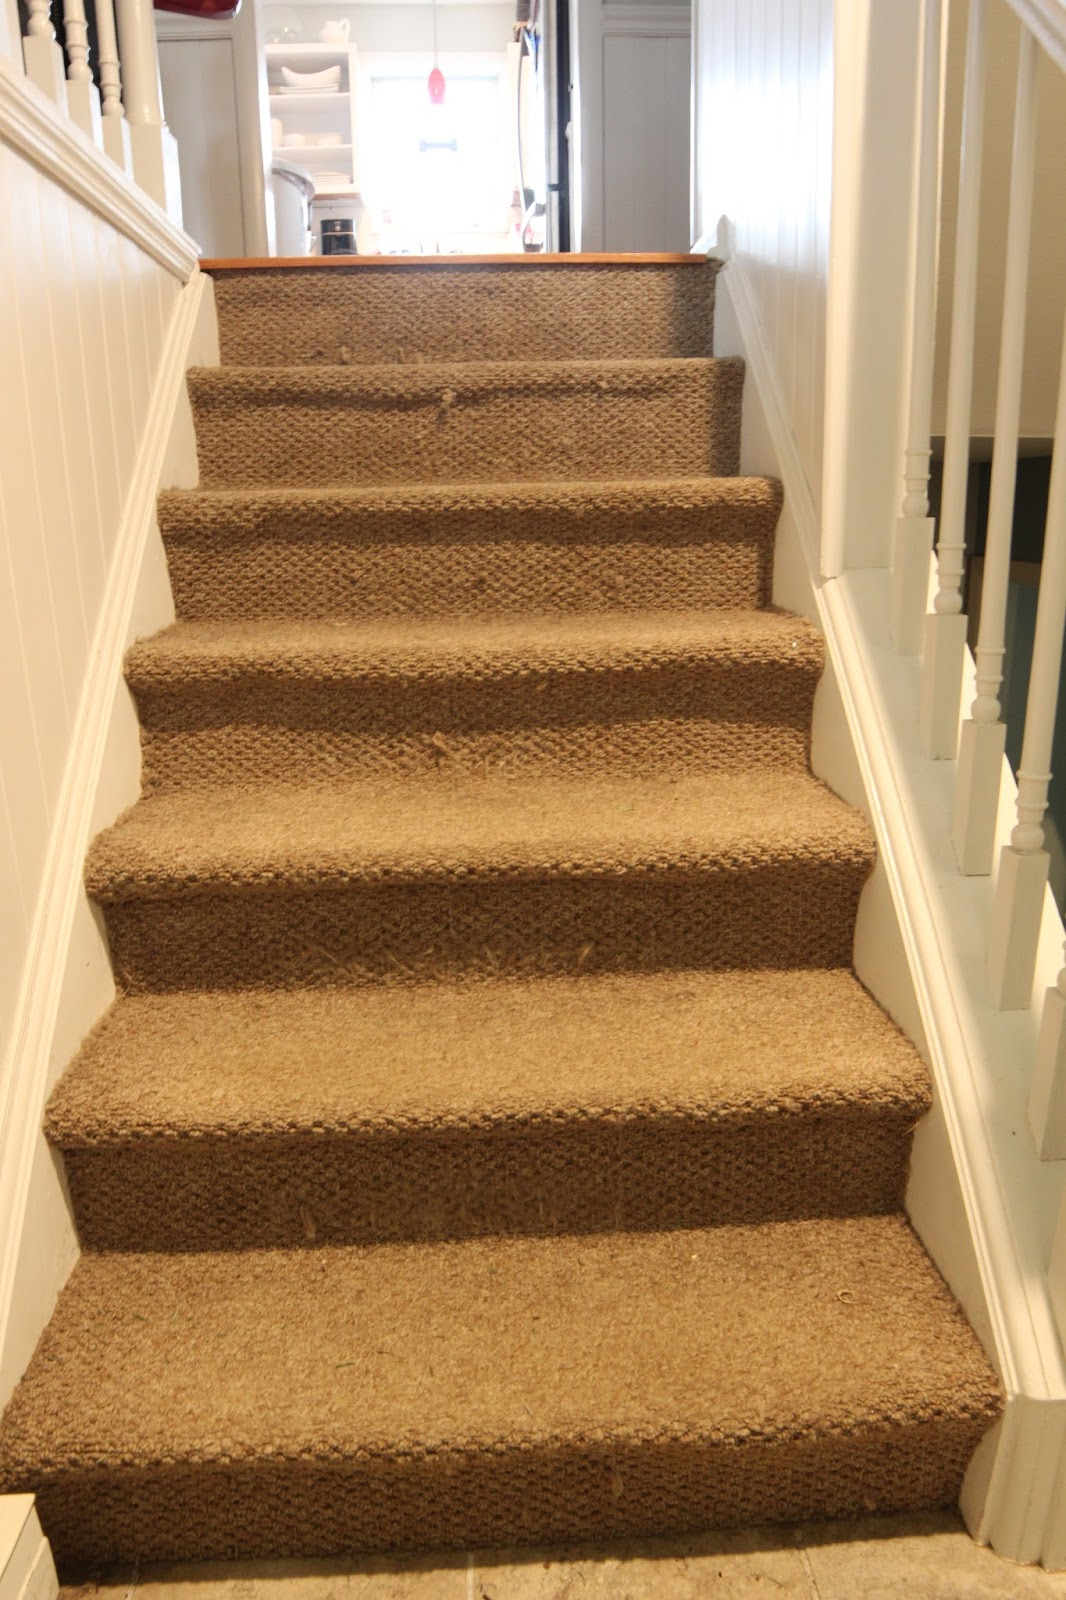 After Researching My Options I Landed On Replacing The Carpet With A Rug  Runner. I Liked This Option Better Than Bare Wood Since Stairs Can Be  Really Loud ...